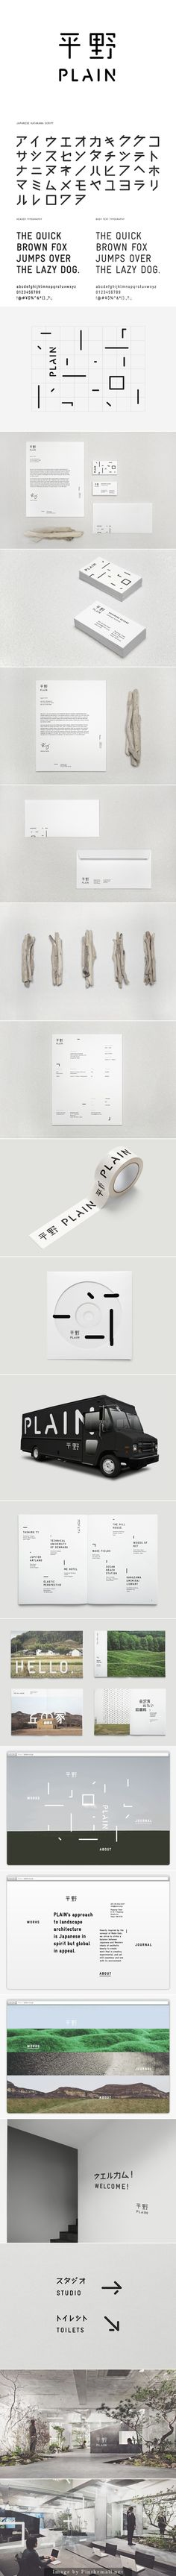 PLAIN by Sidney Lim YX, via Behance Logo, sans serif, Japan, website, corporate design, office signals, brochure